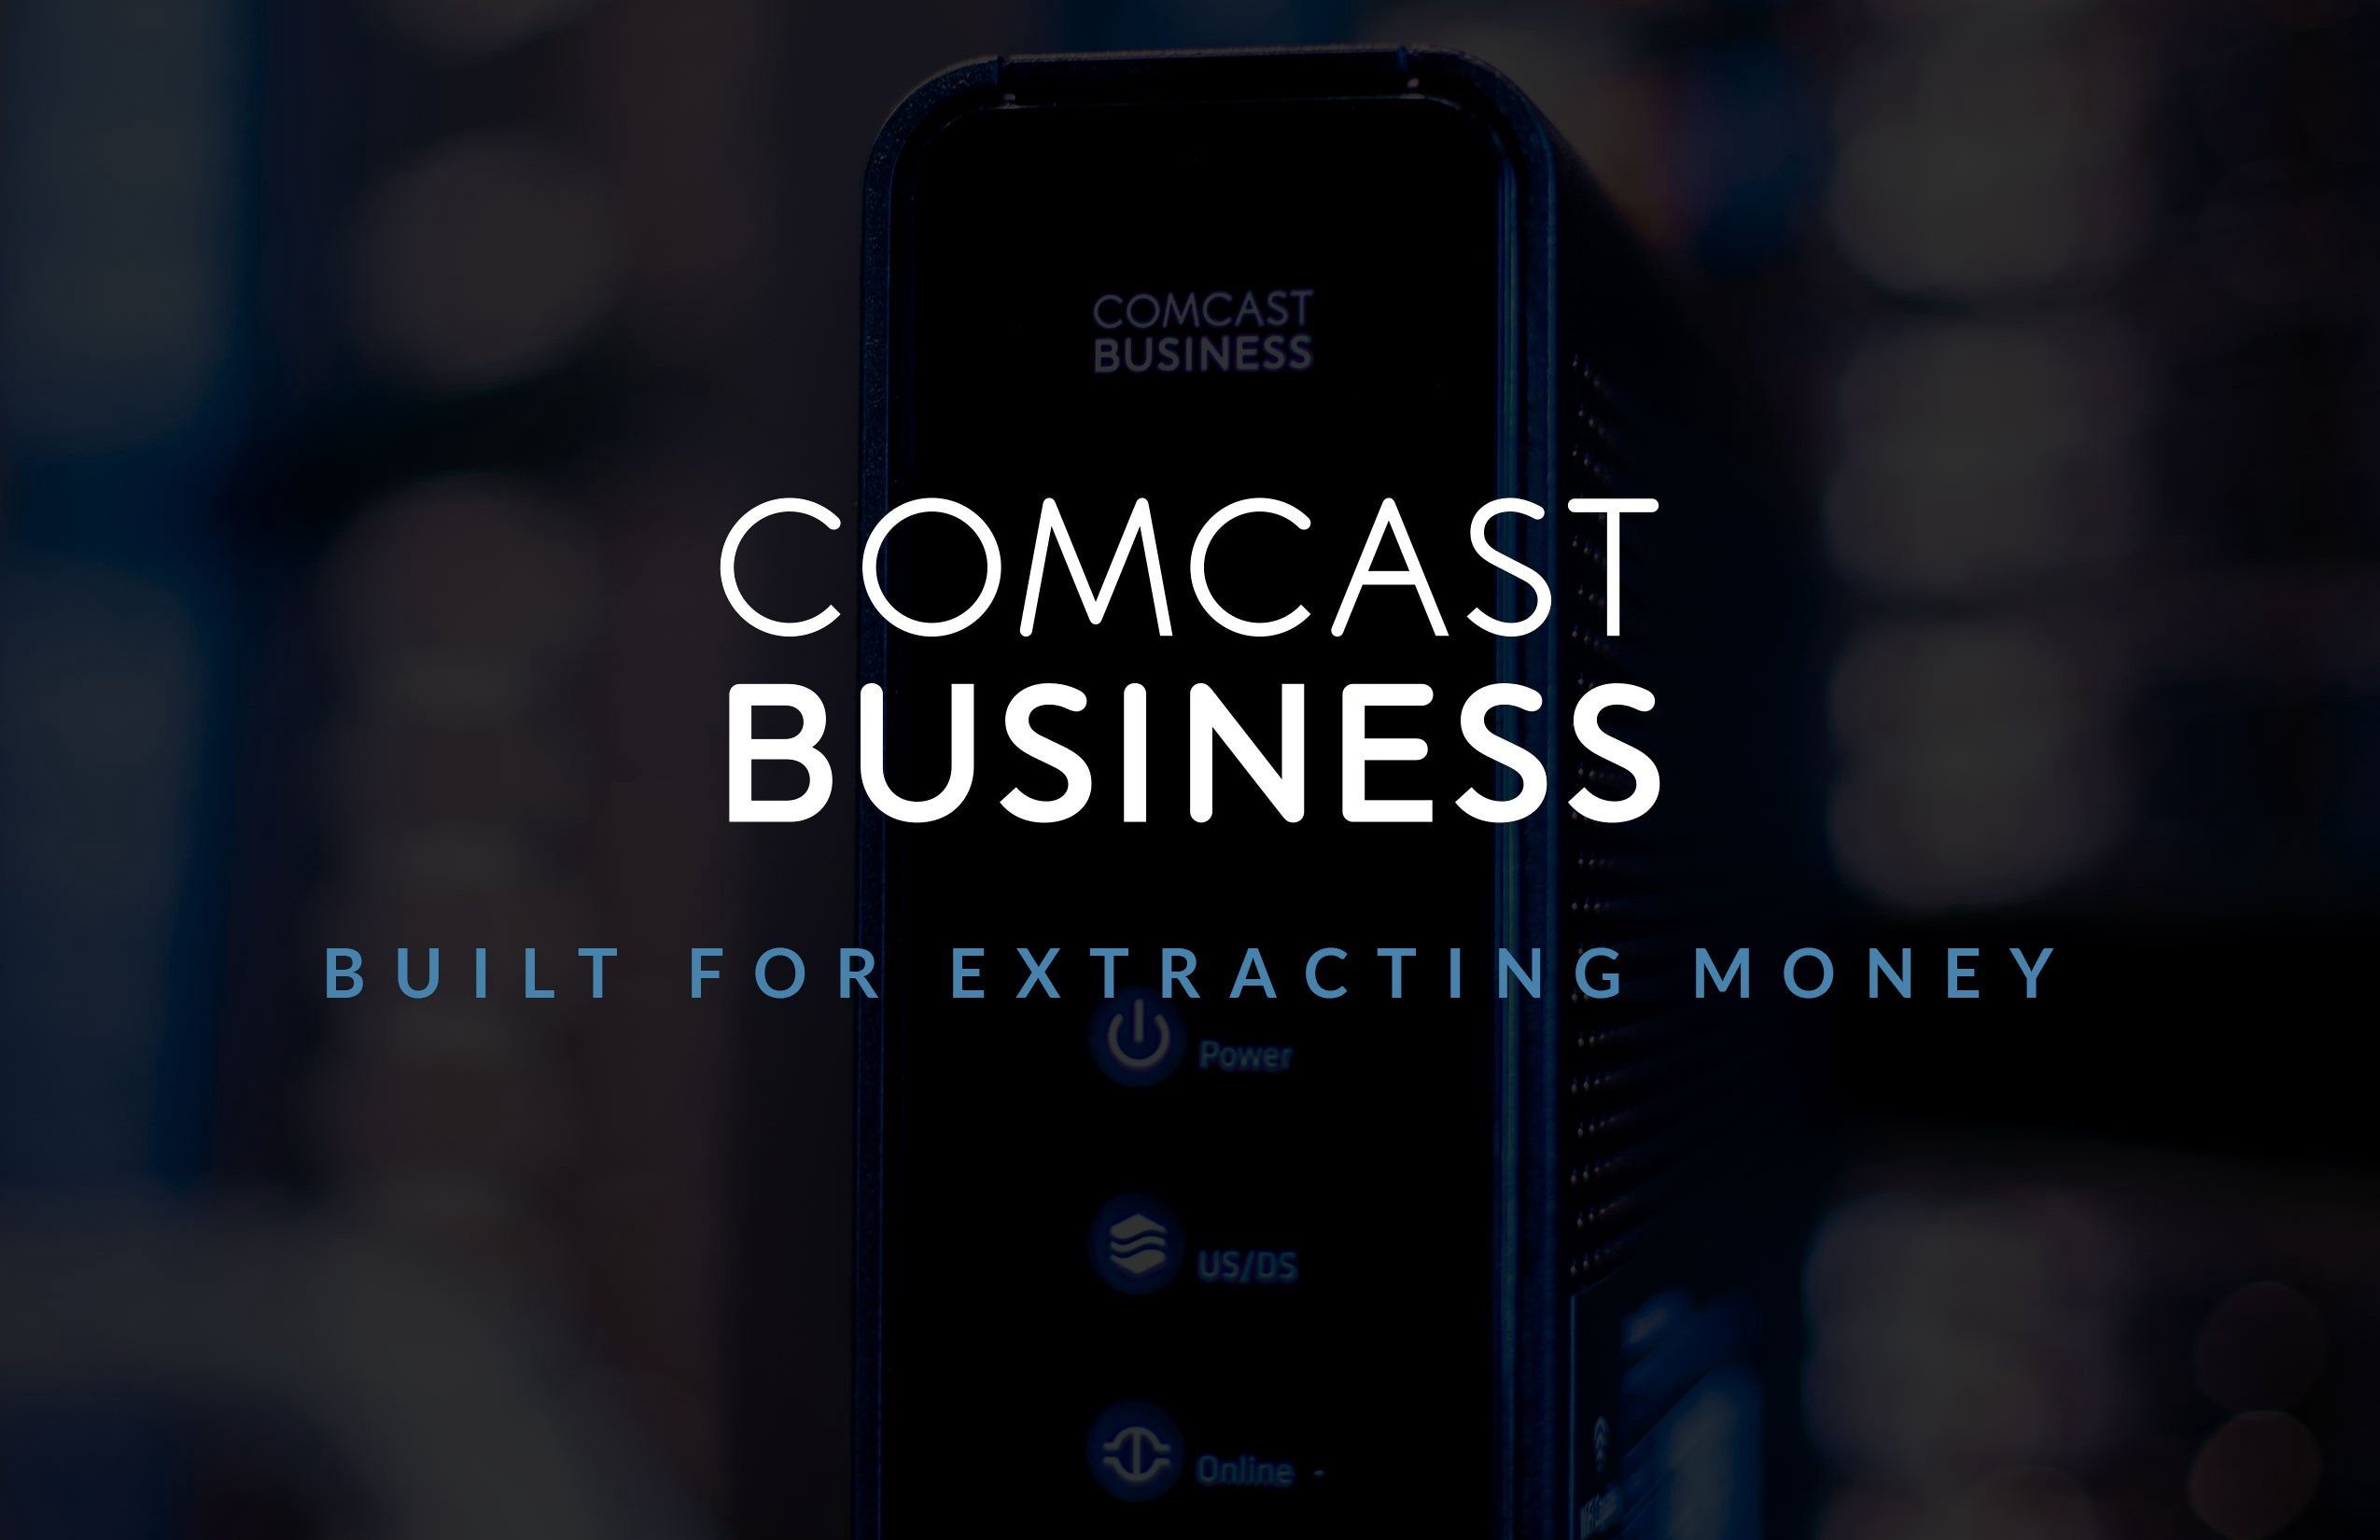 It just cost me $1,800 to cancel my Comcast Business Account